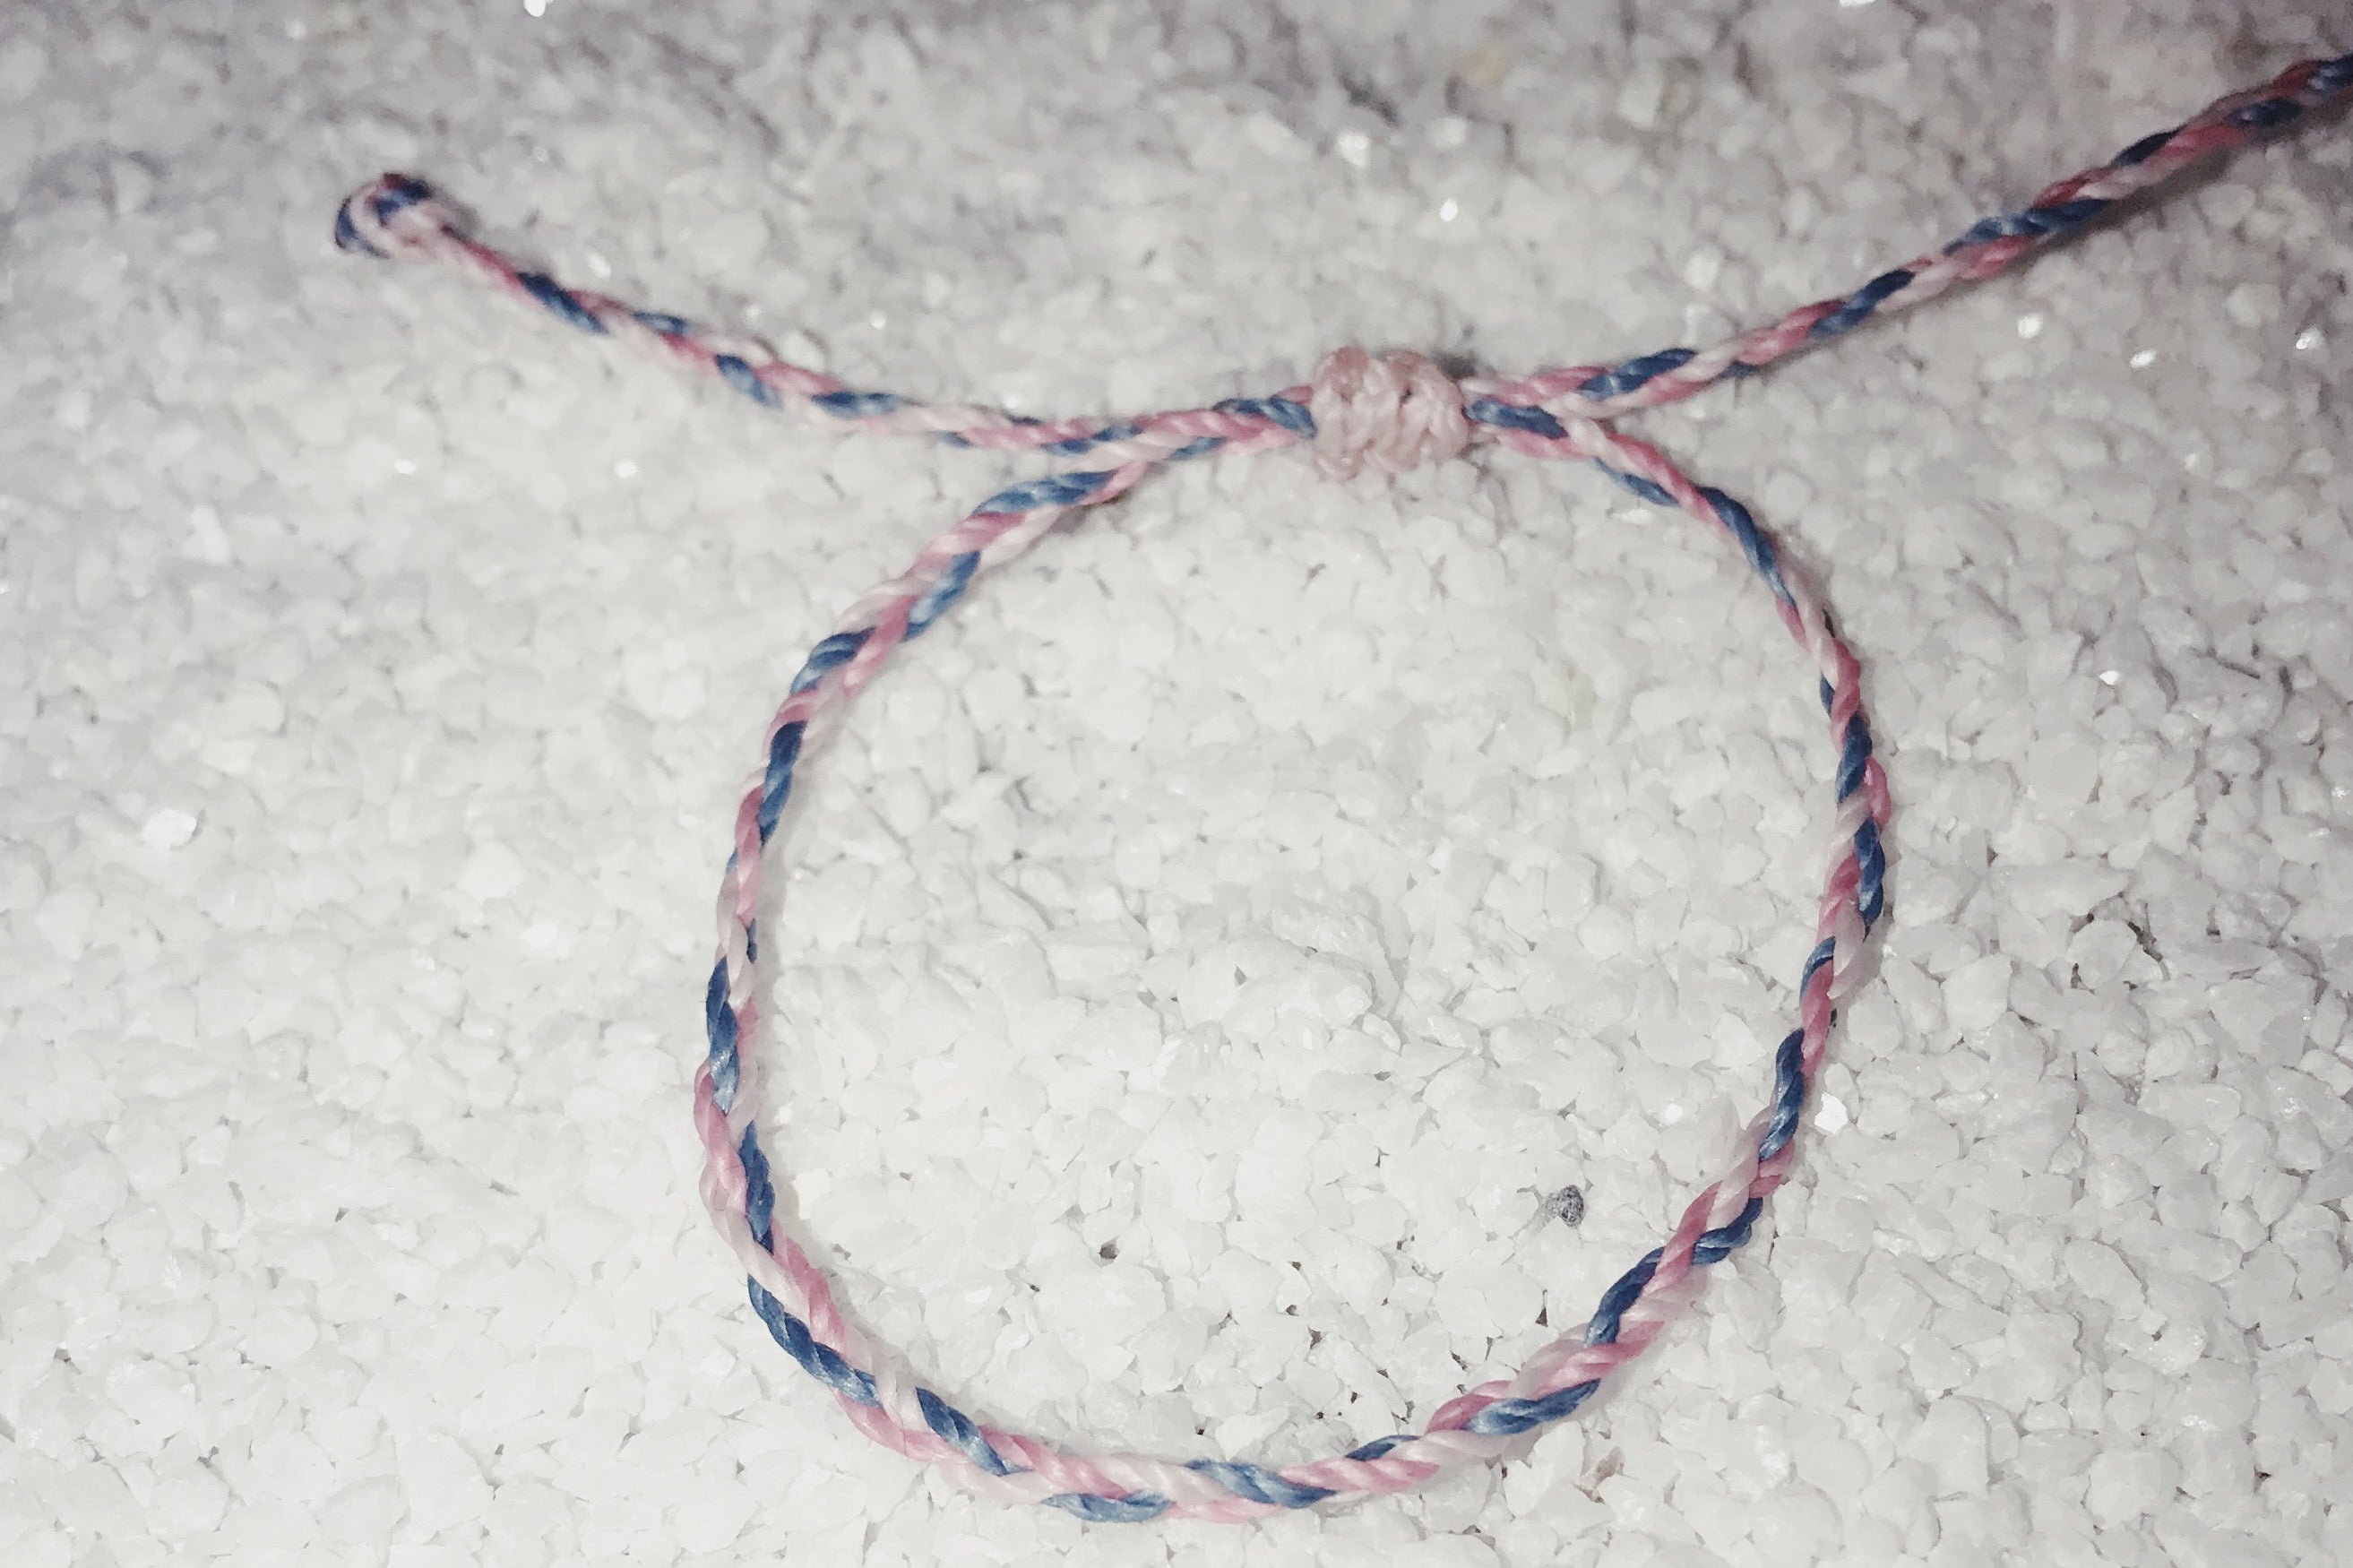 Friendship Bracelet - Pink, Blue and White